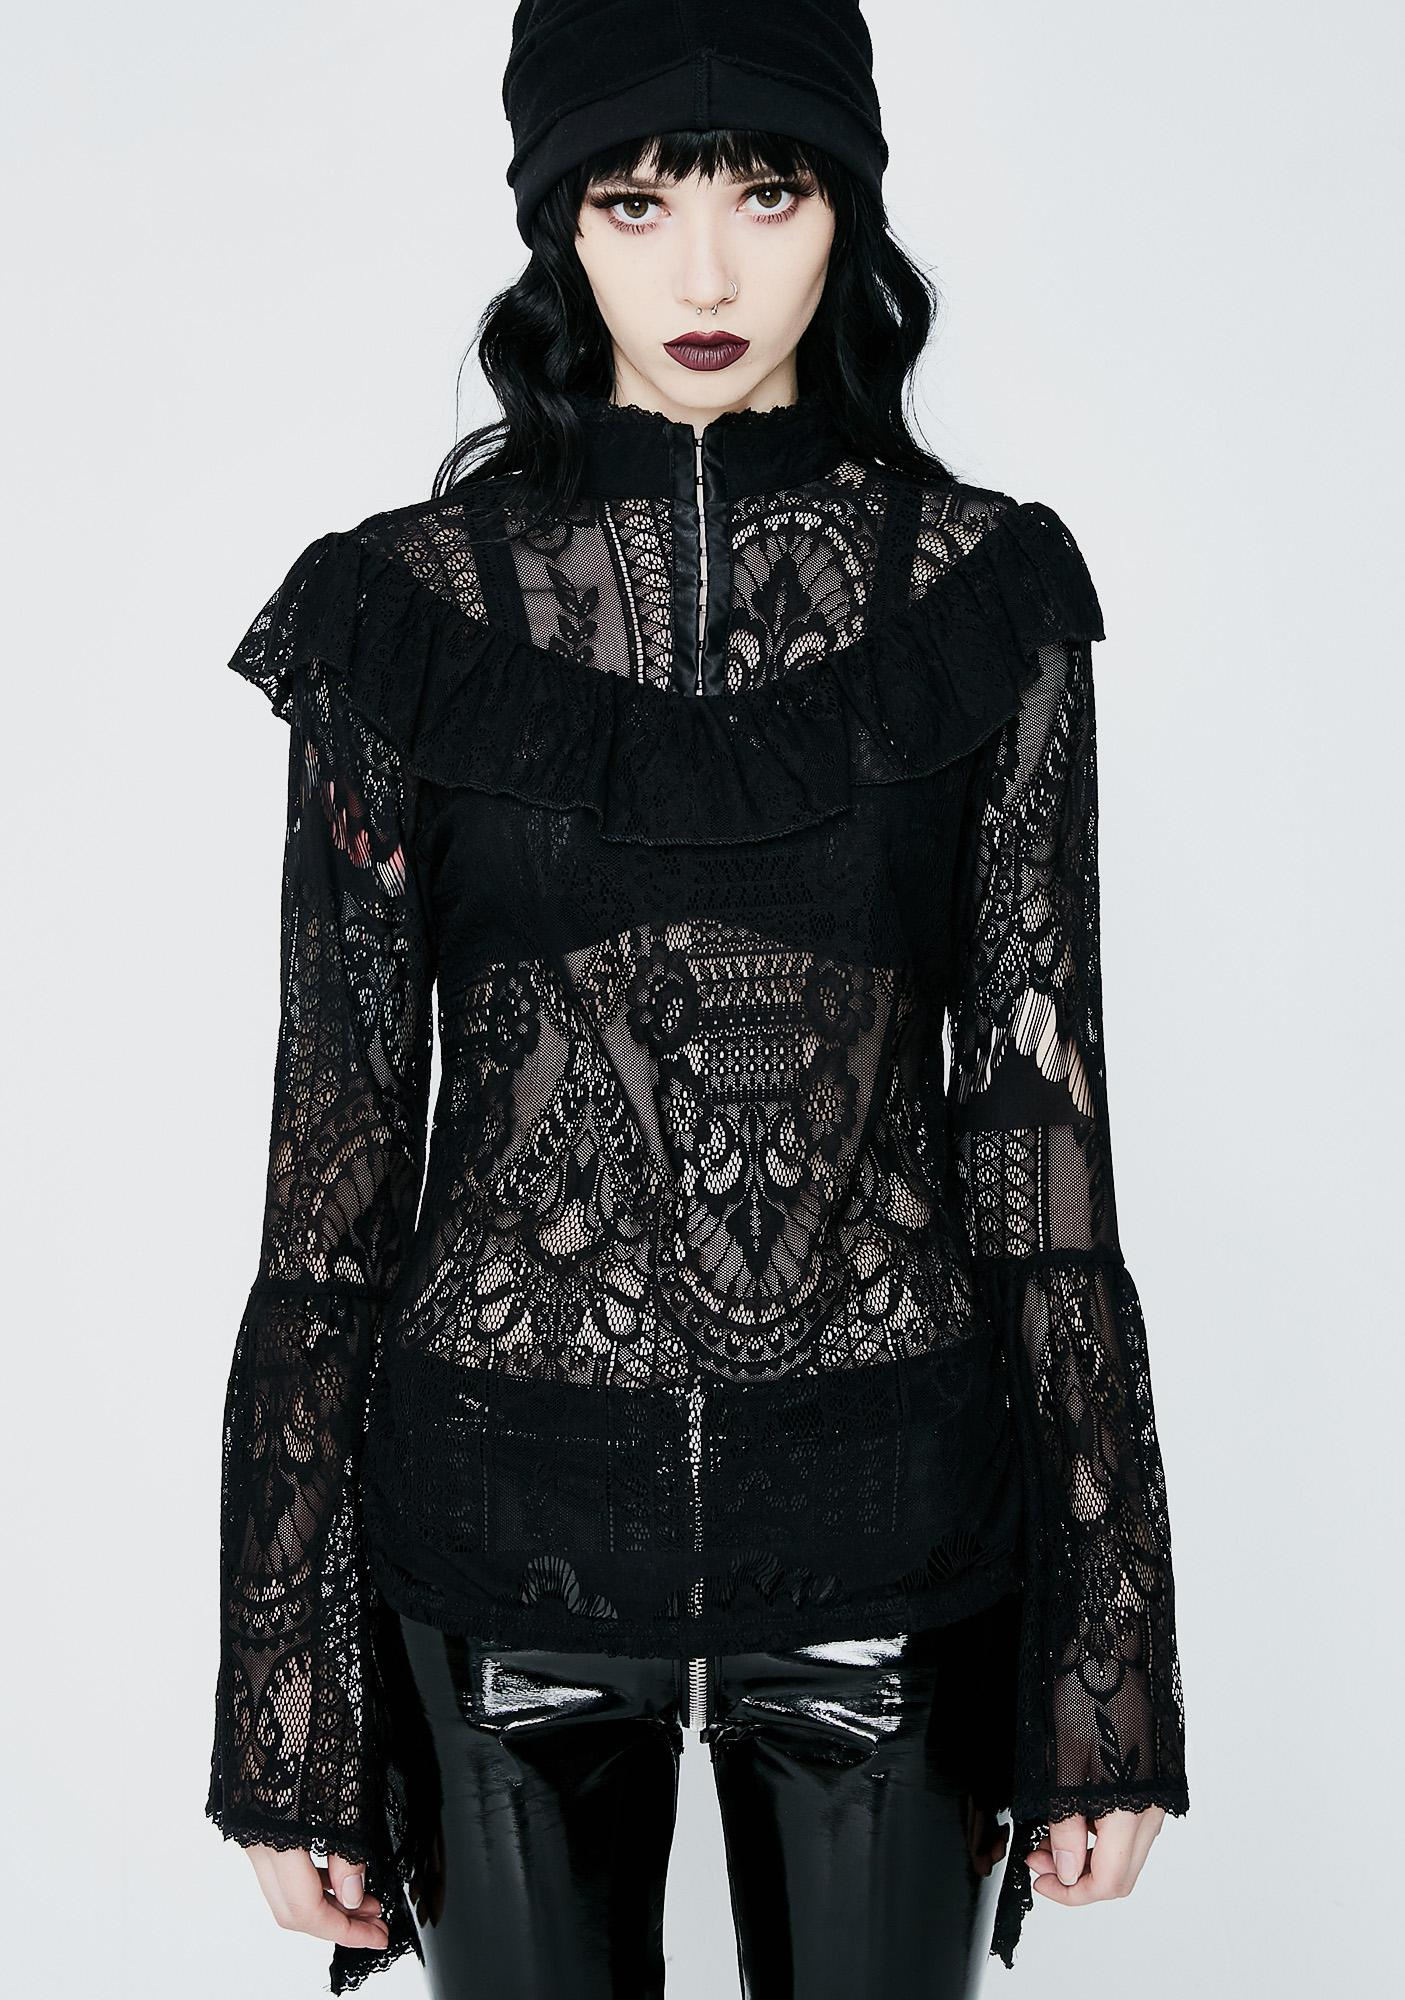 Killstar Morte Mistress Top